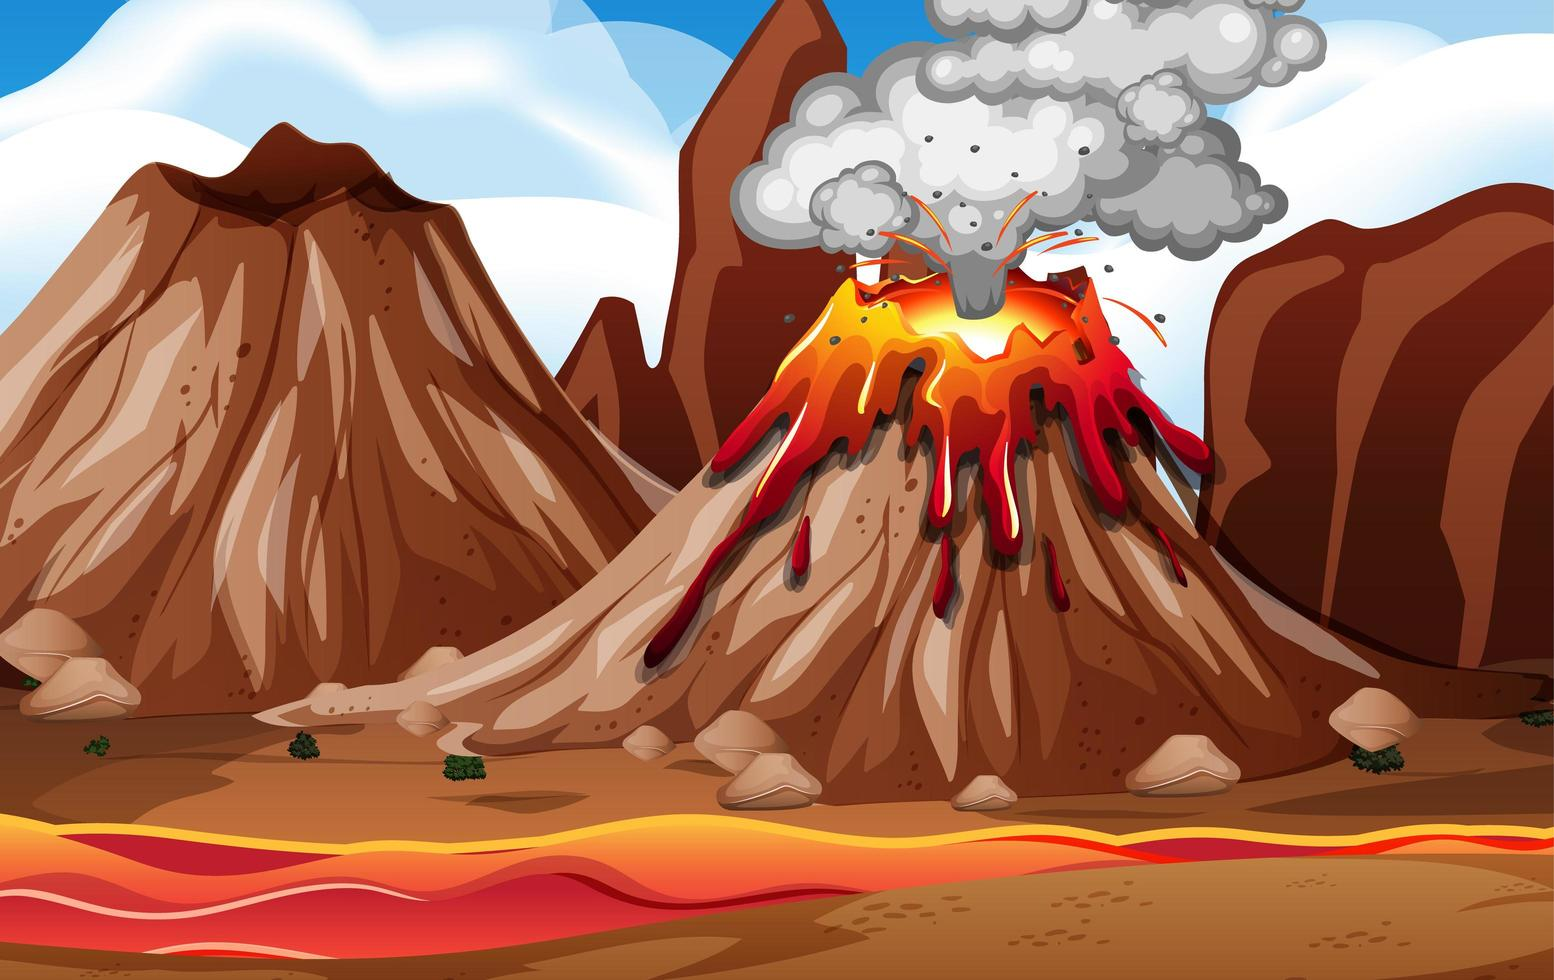 Volcano eruption in nature scene at daytime vector